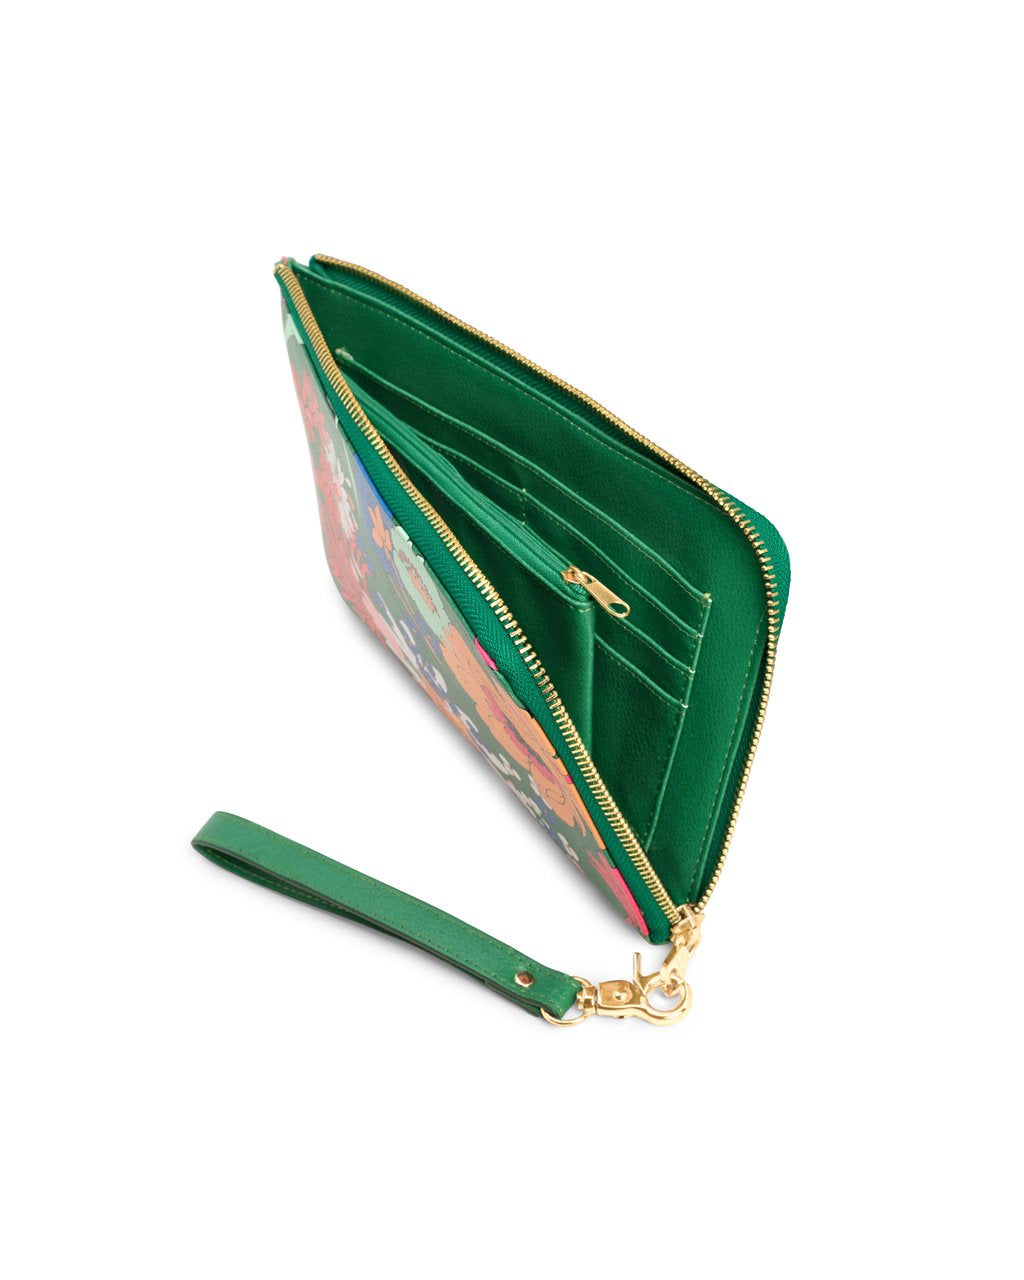 Solid green interior with several card slots and includes a middle zipper pocket